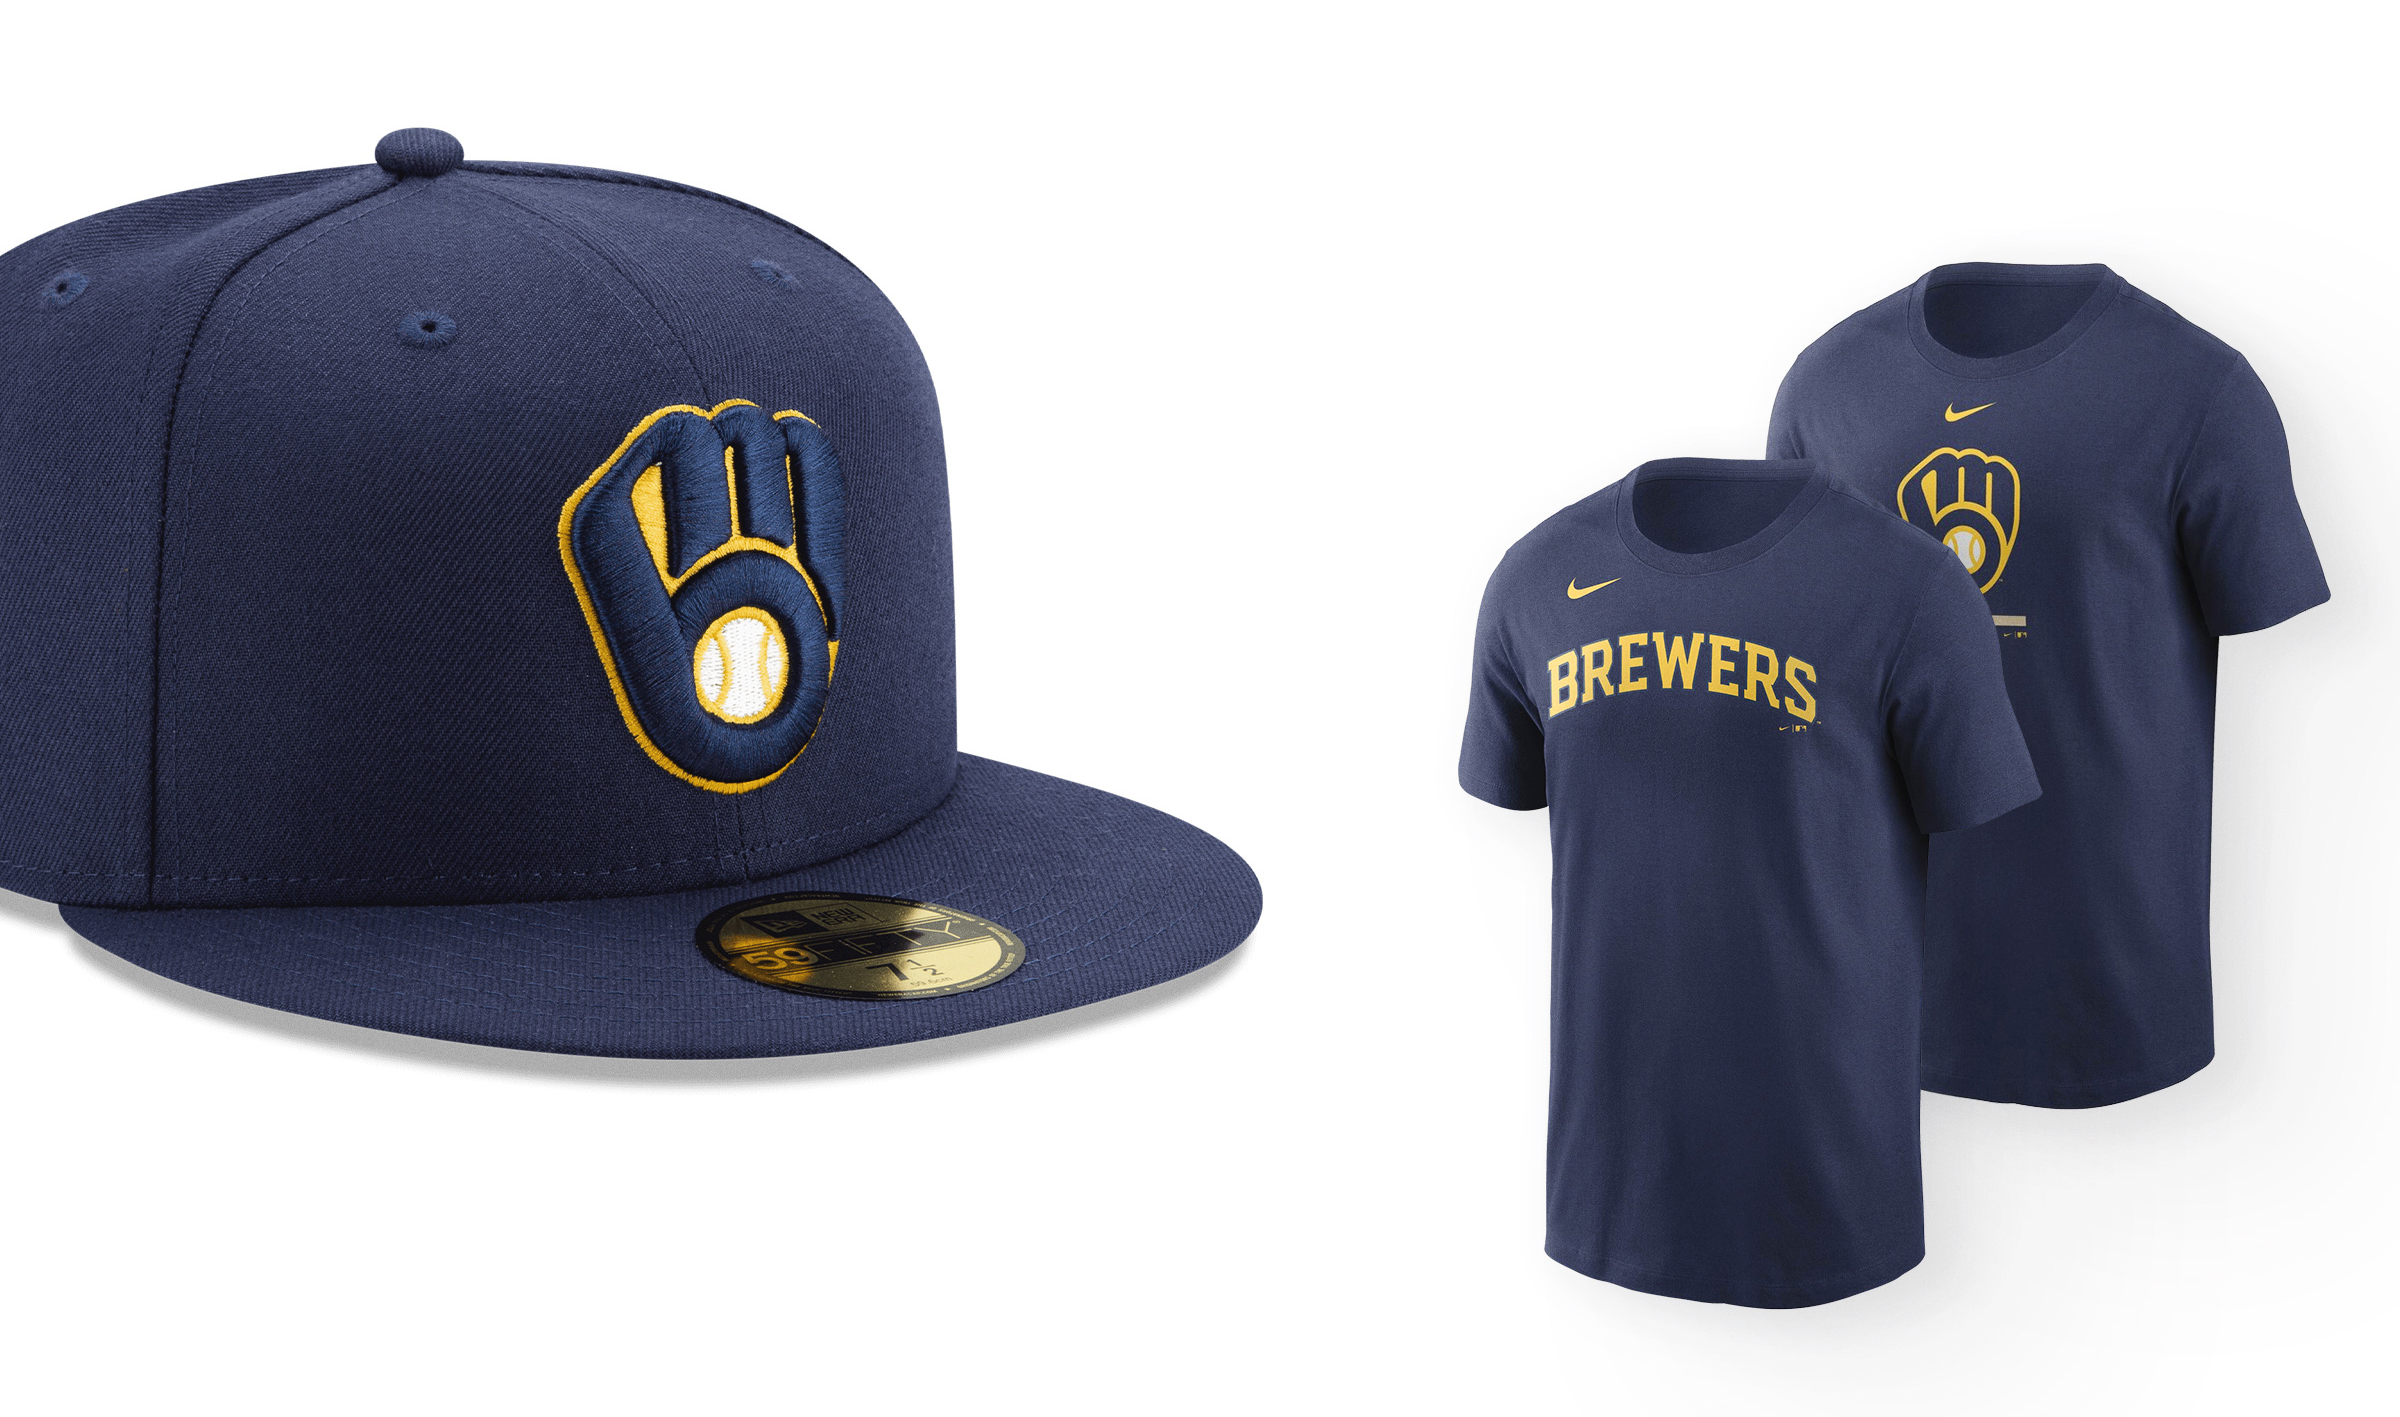 Milwaukee Brewers New Logo Hat And Shirt